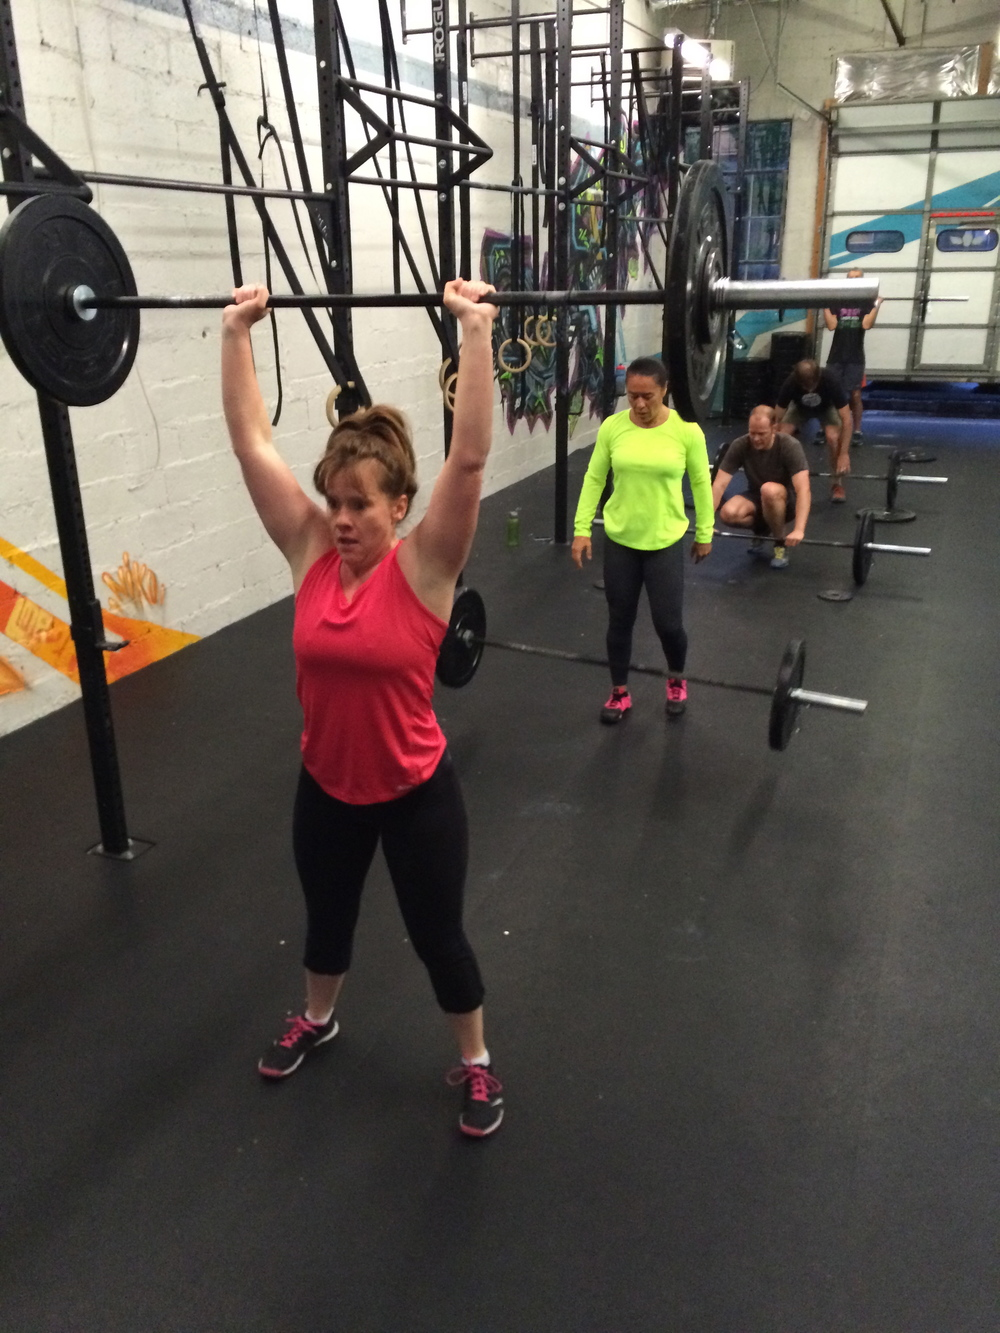 Brandie is one of the strongest ladies in our gym. She also happens to be one of the most welcoming to newcomers.